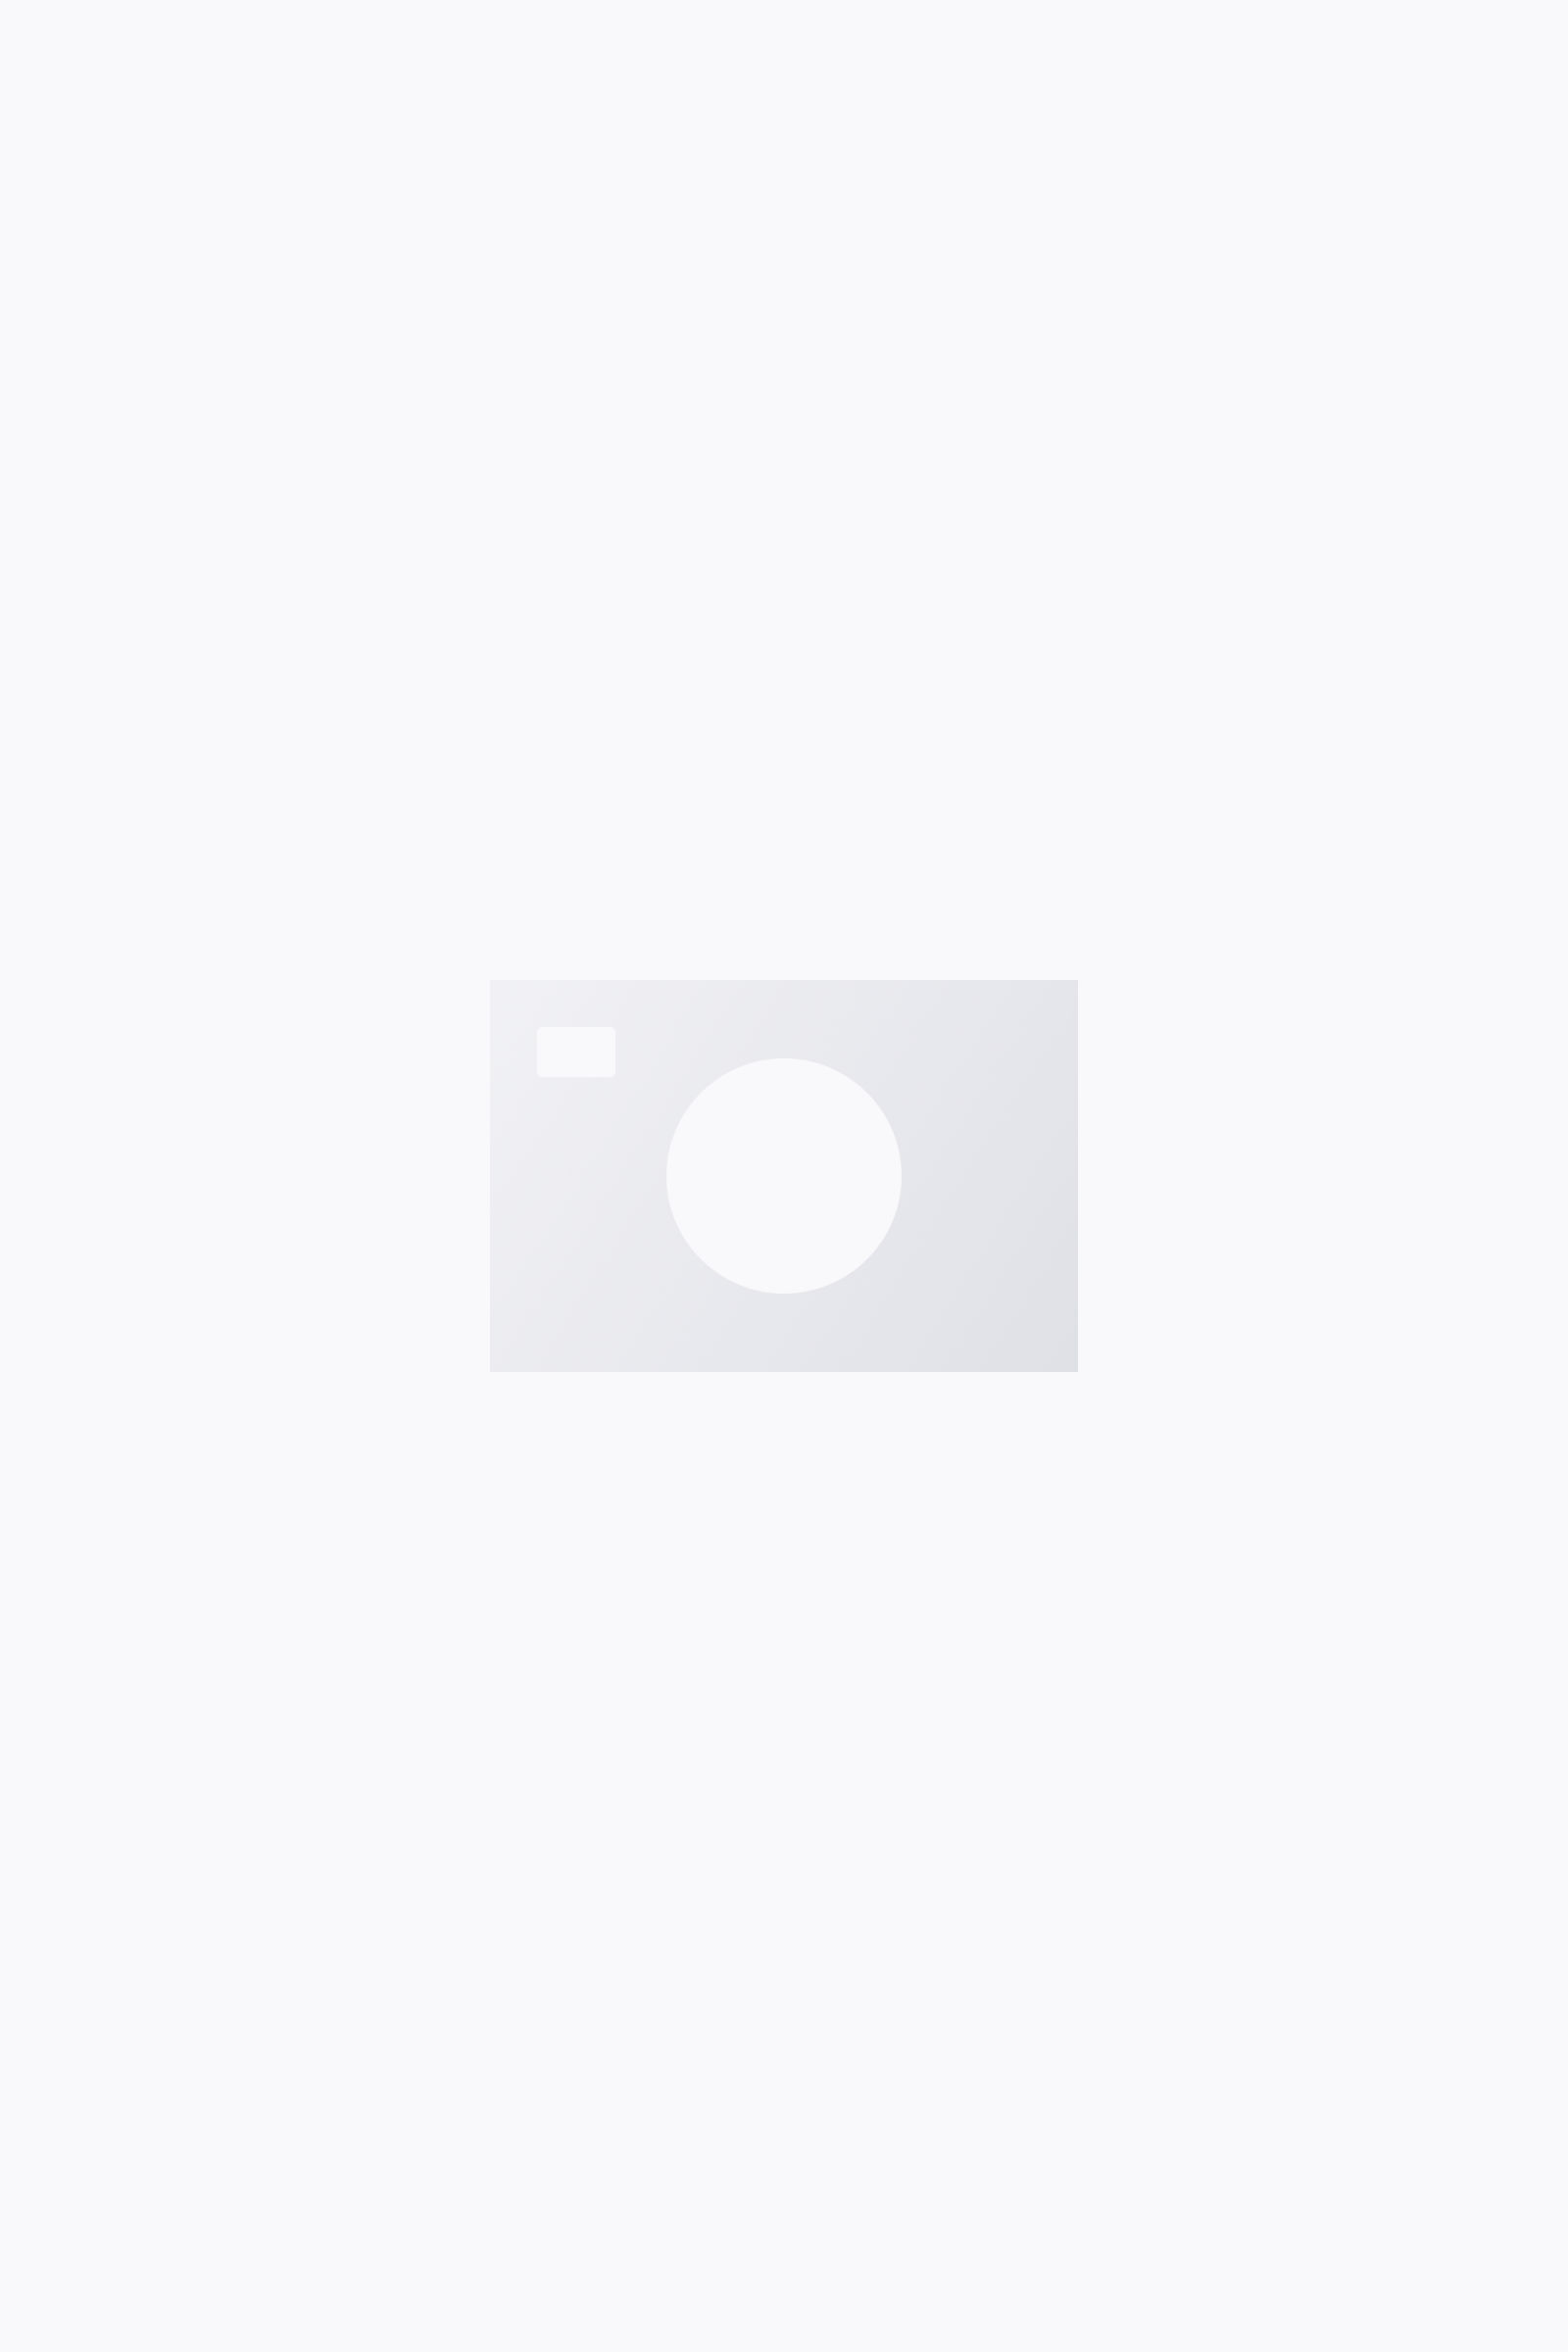 COS RECYCLED POLYESTER V-NECK A-LINE SHIRT,White